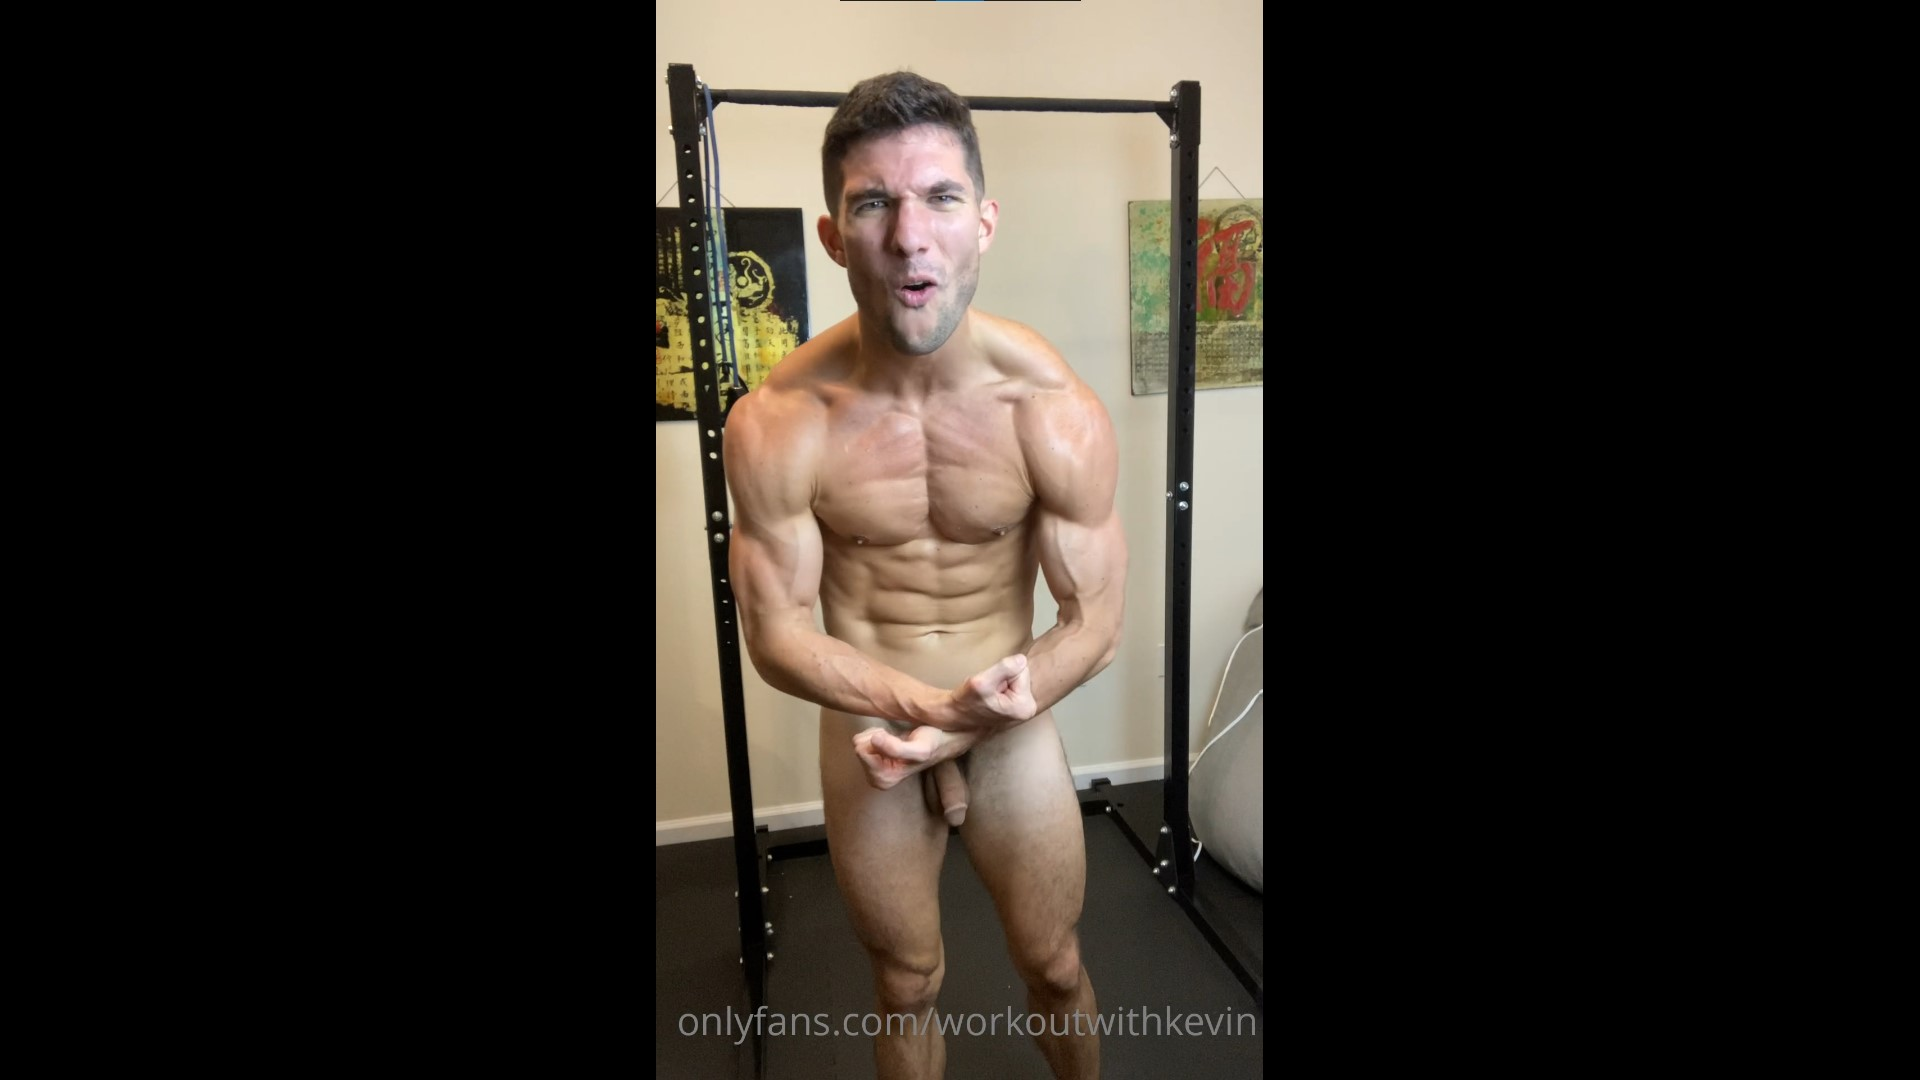 Working out hard while naked - Kevin Cook (WorkoutwithKevin)